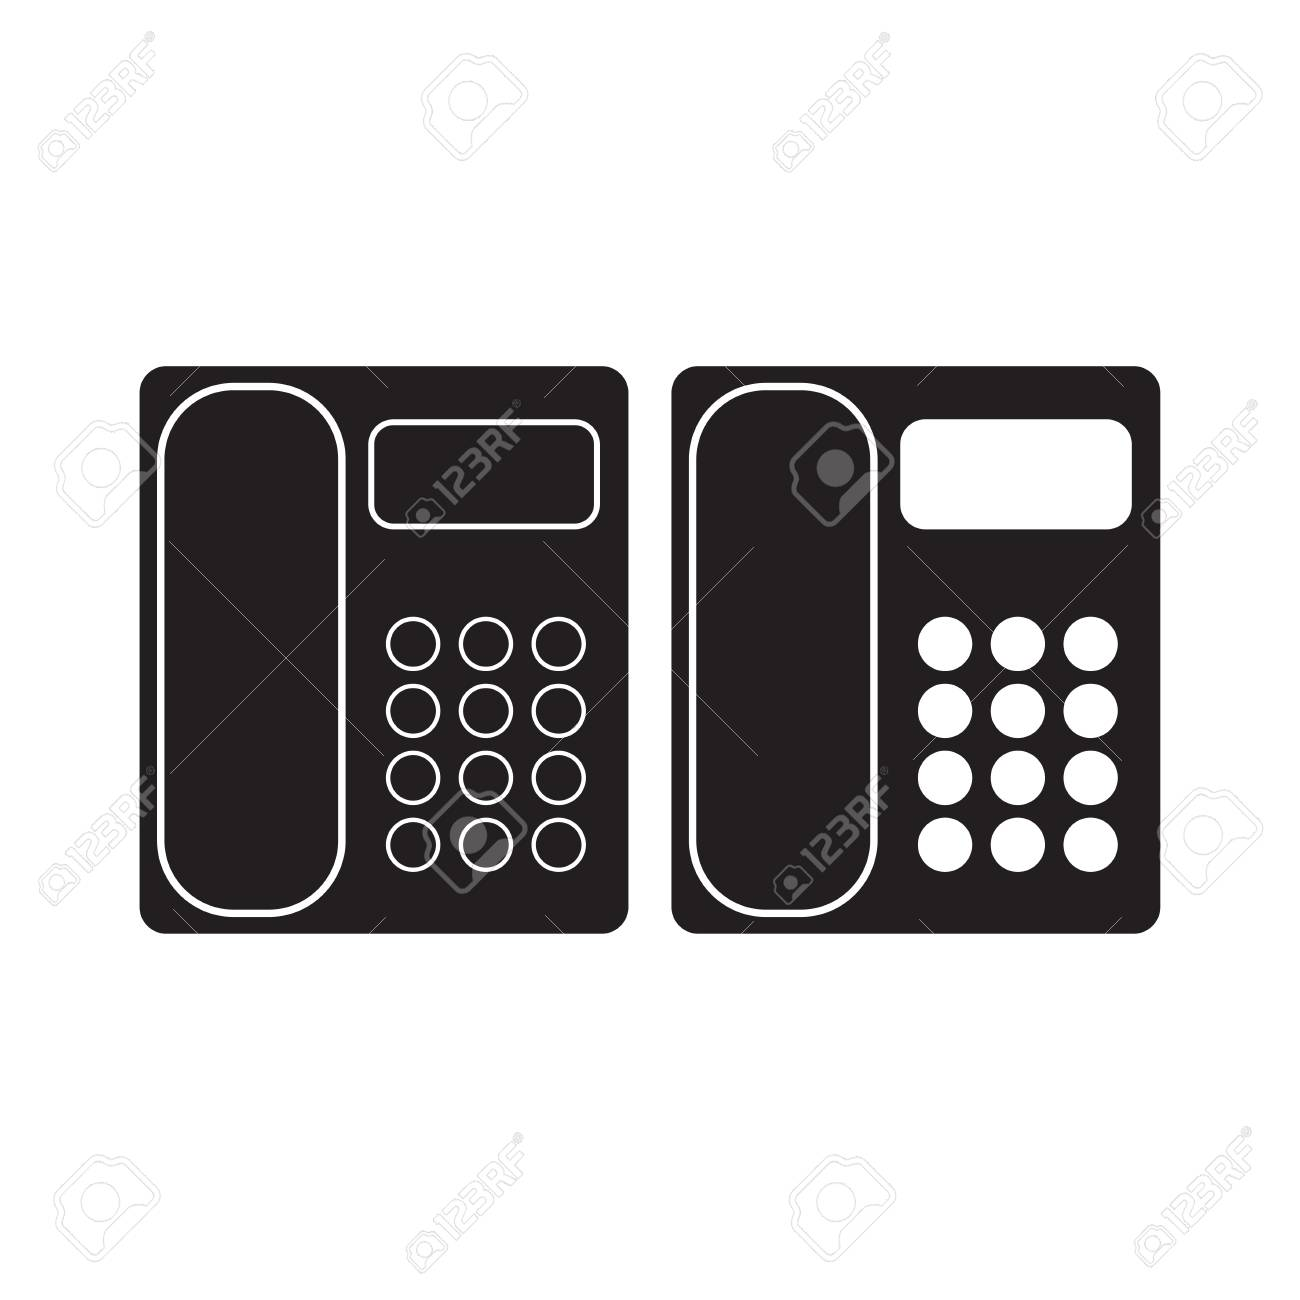 Office Phone icon Vector Illustration  Telephone Flat Sign  isolated